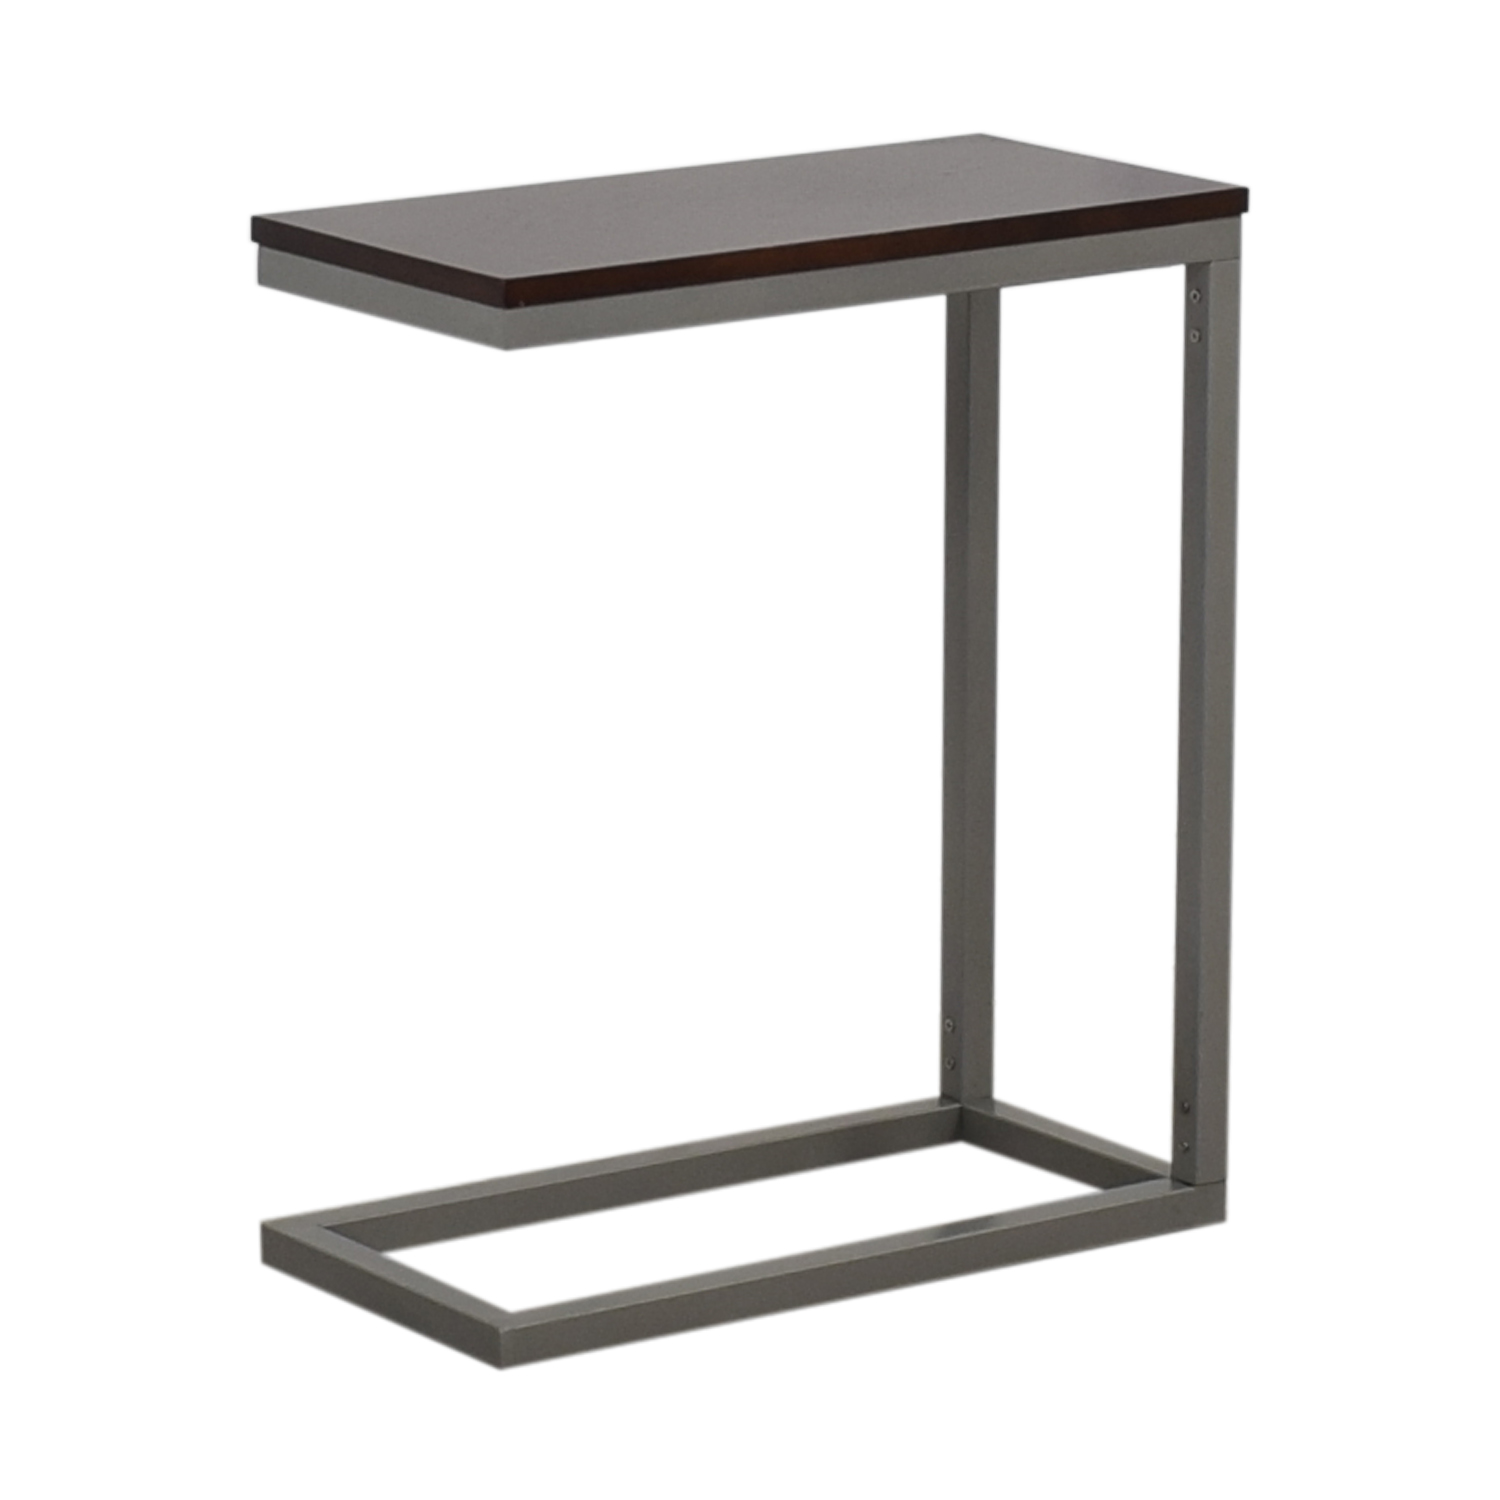 West Elm West Elm C-Shaped End Table coupon